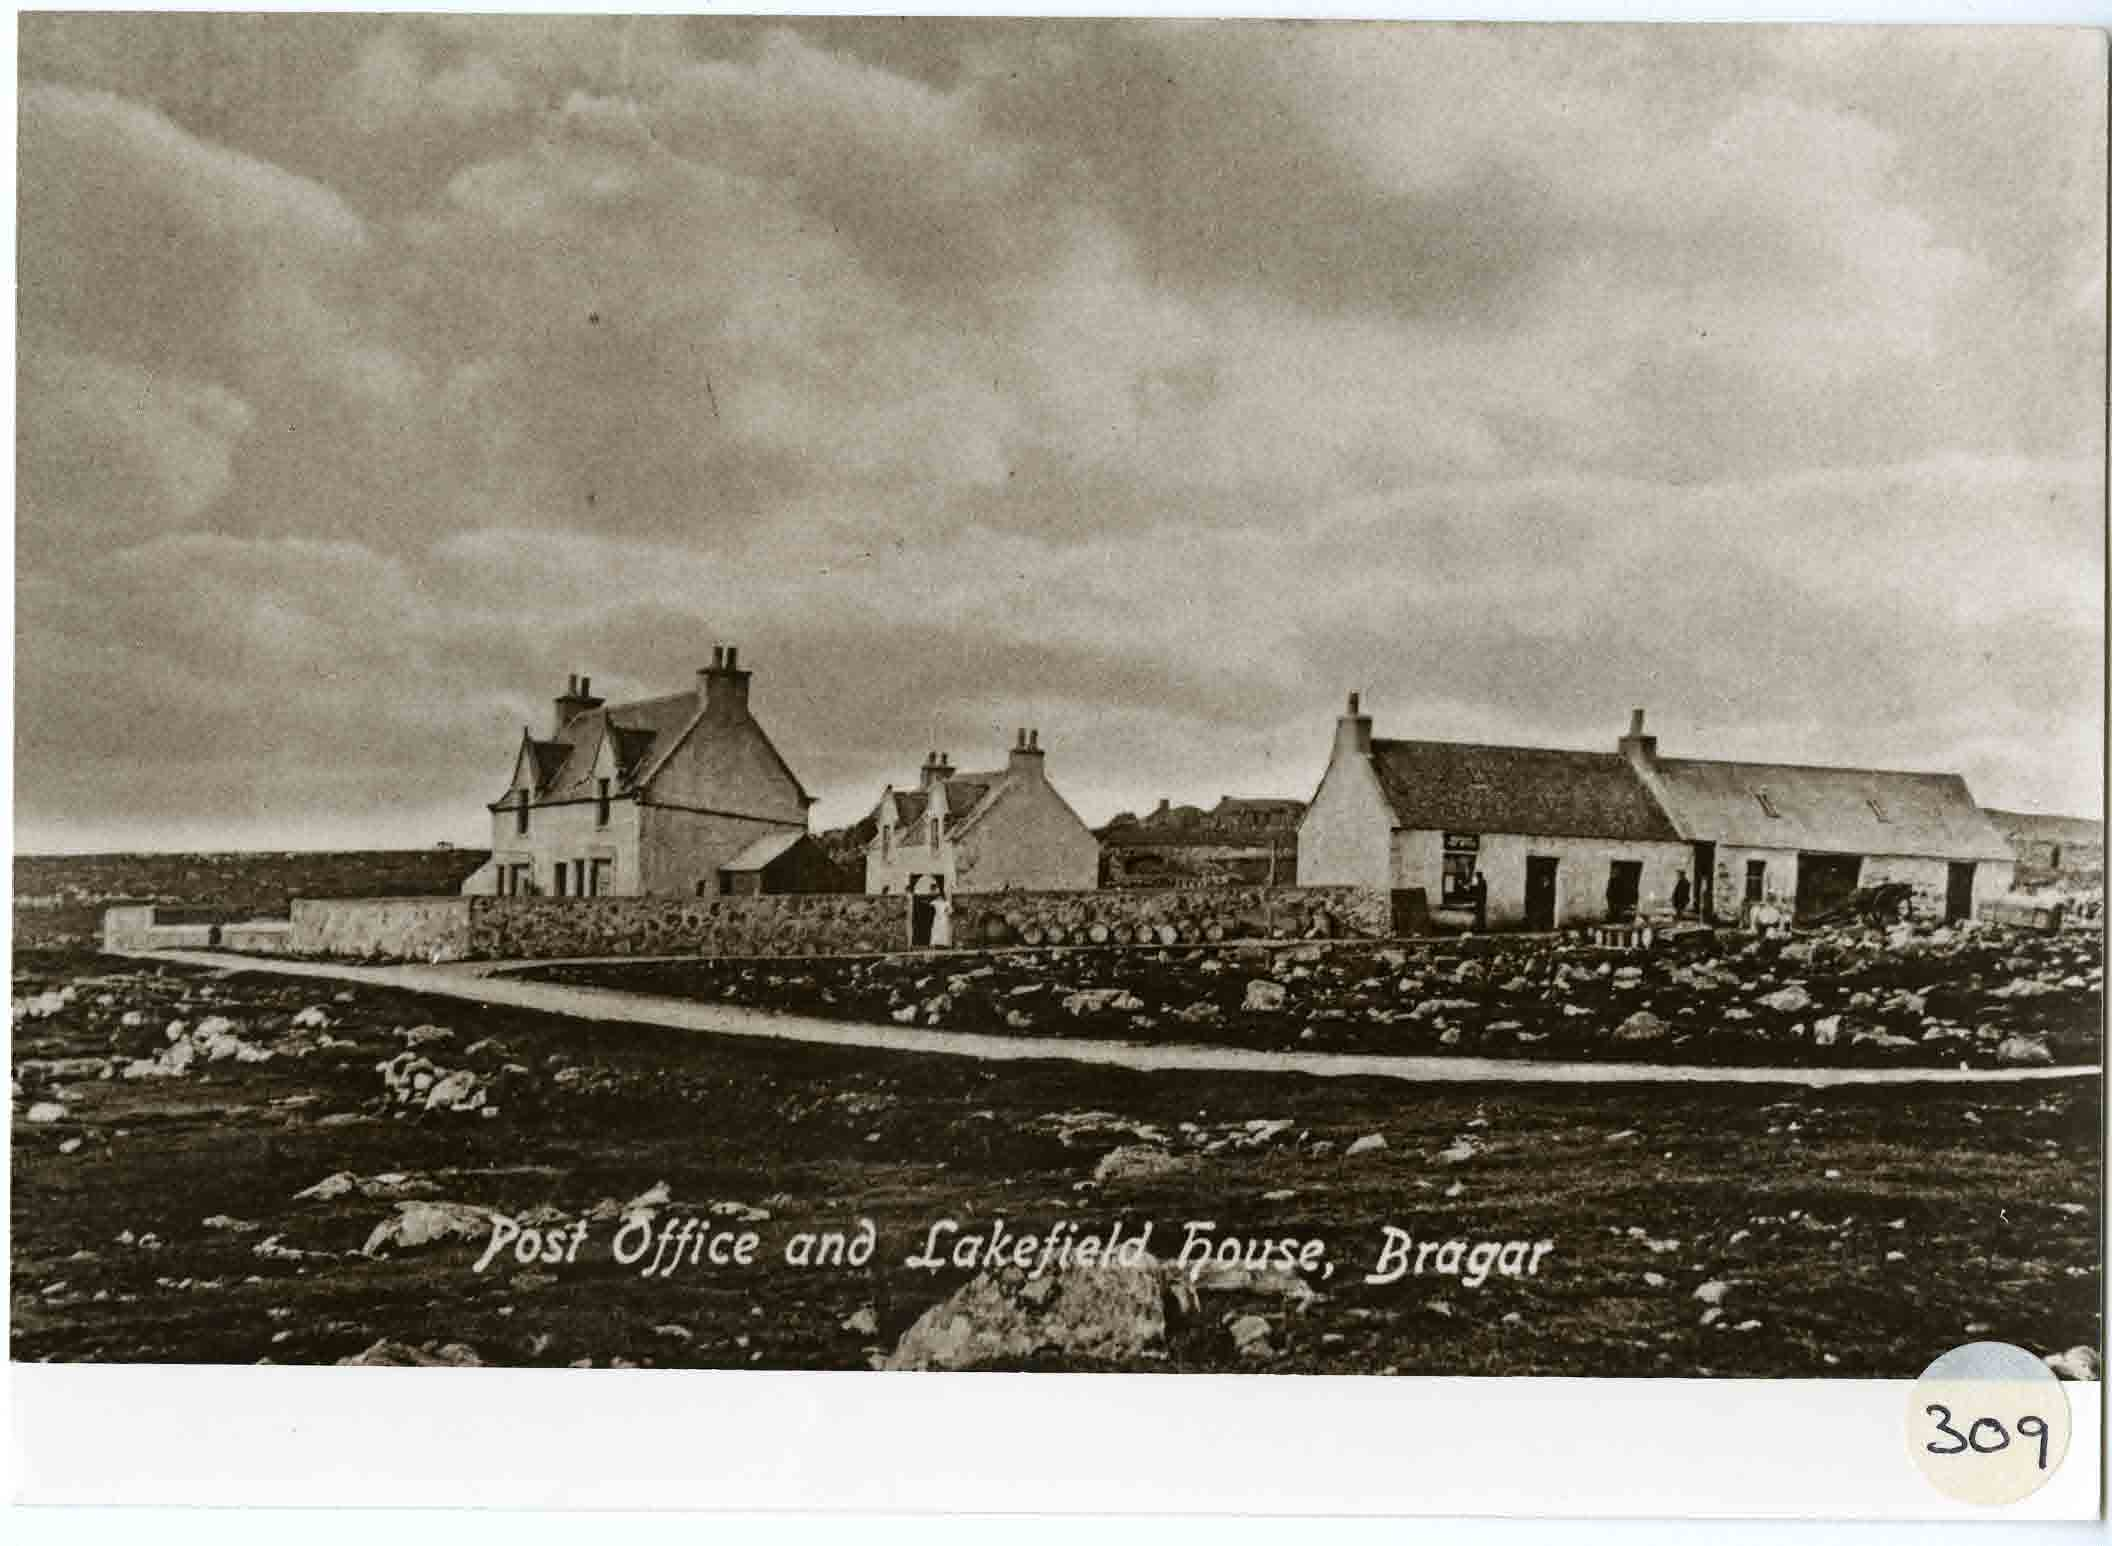 The post office and Lakefield House at Bragar, Lewis